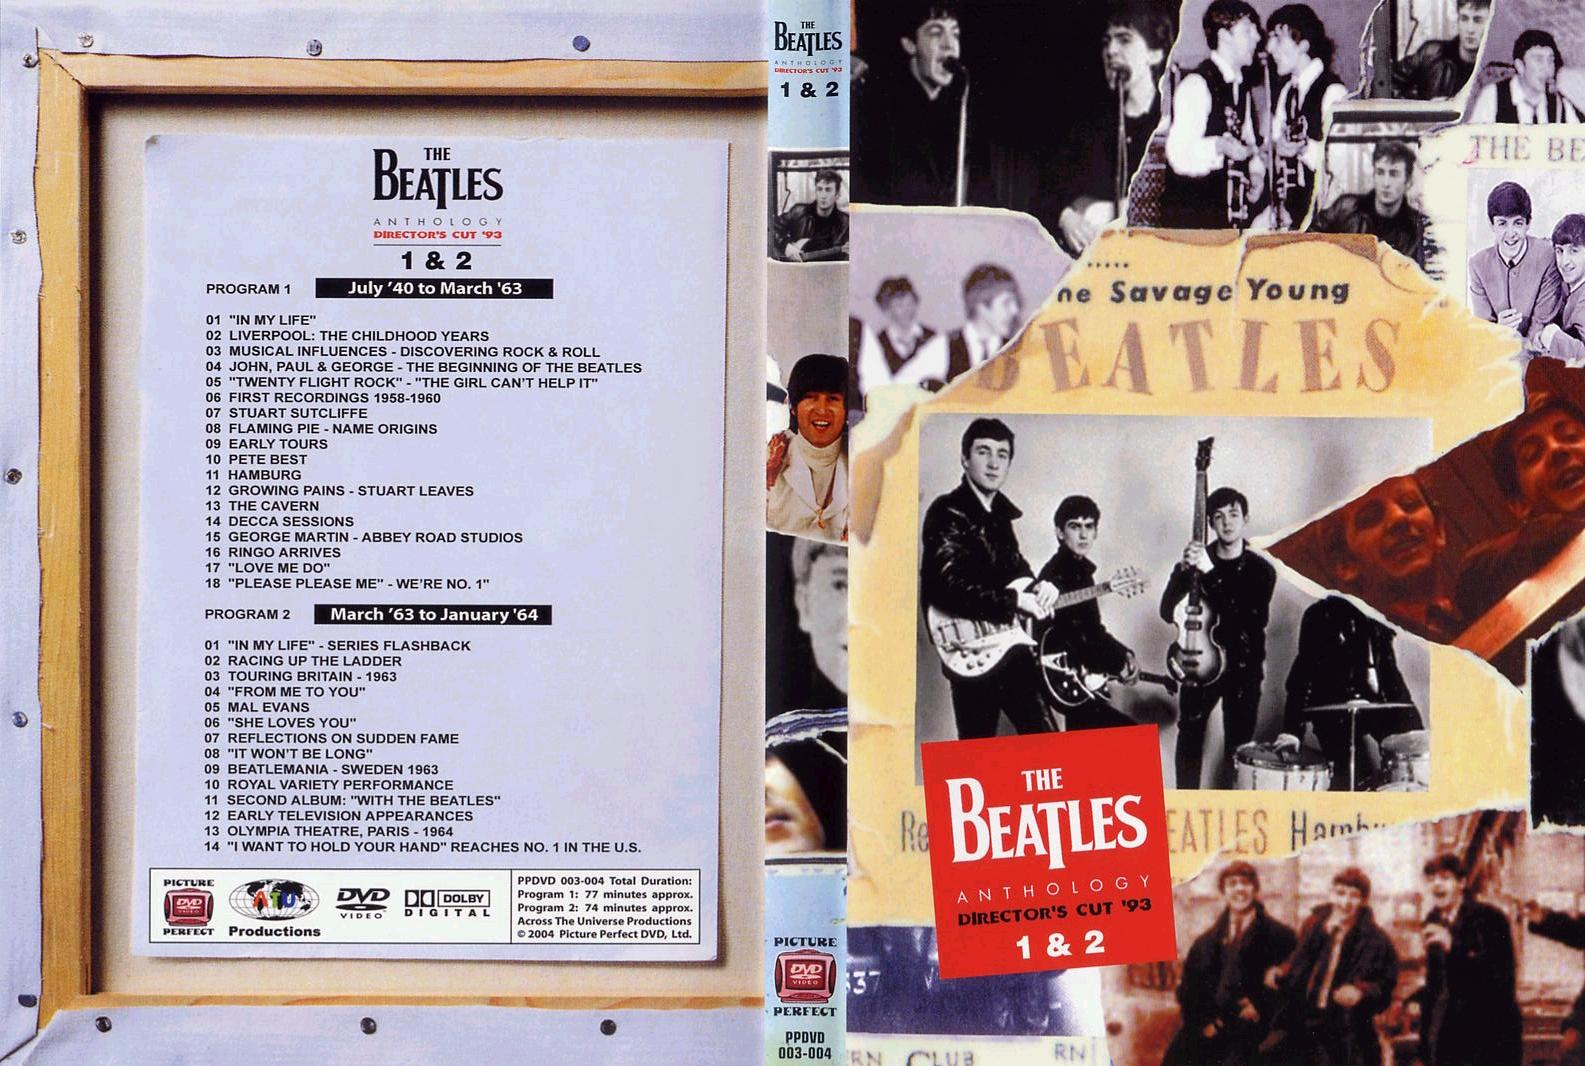 The beatles alone and together